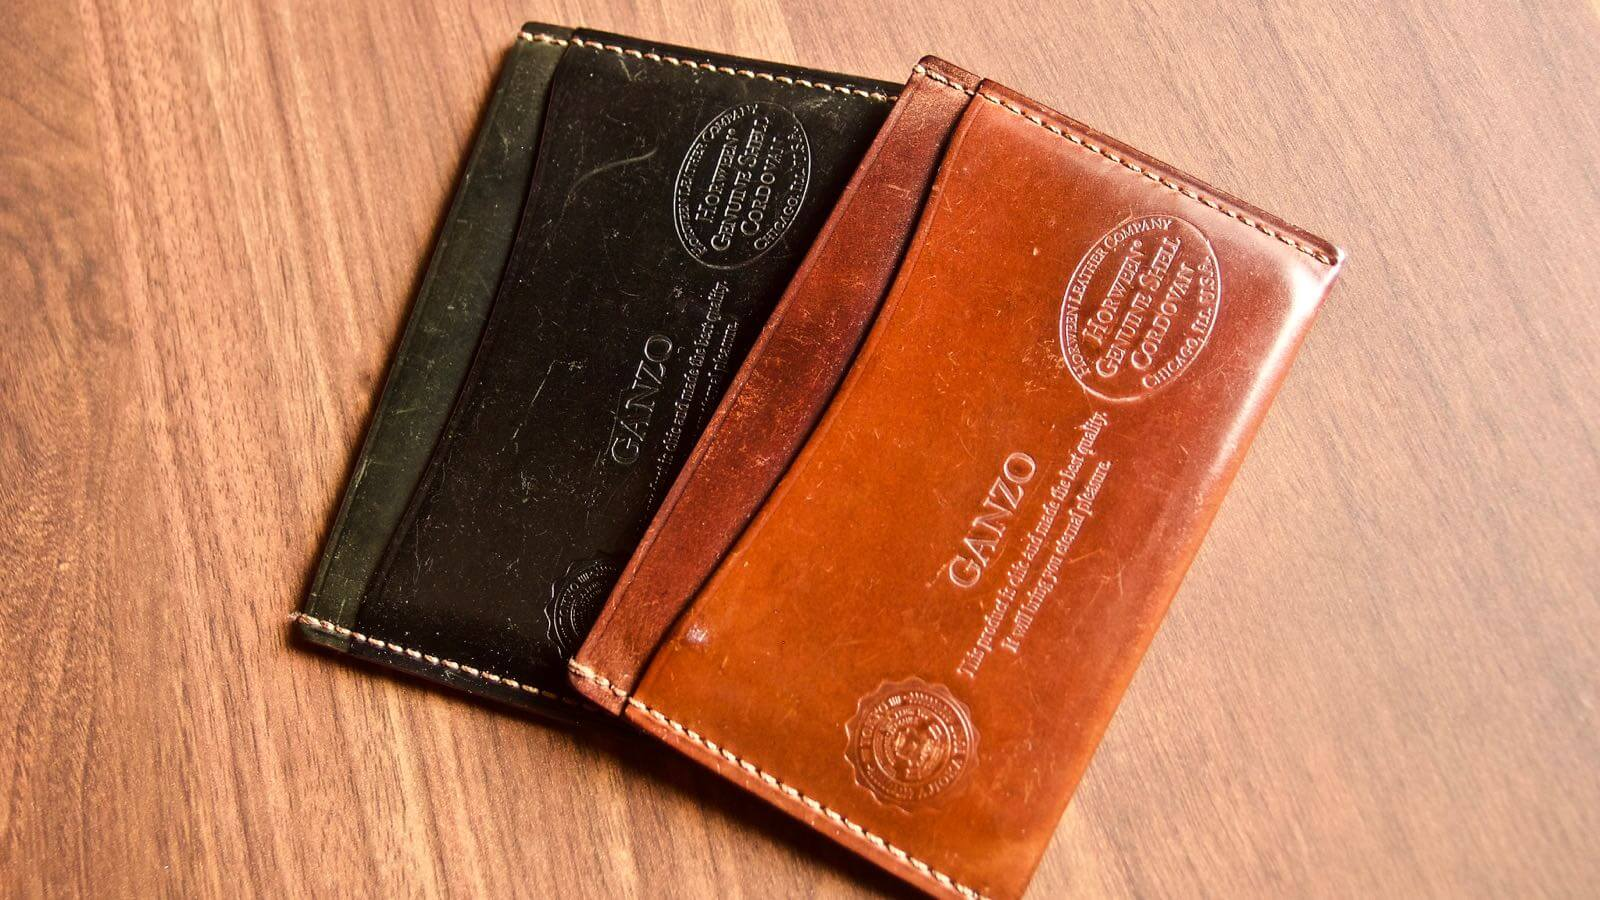 0037 Ganzo Shell Code Bank Business Card Holder 5 Years Aging 15